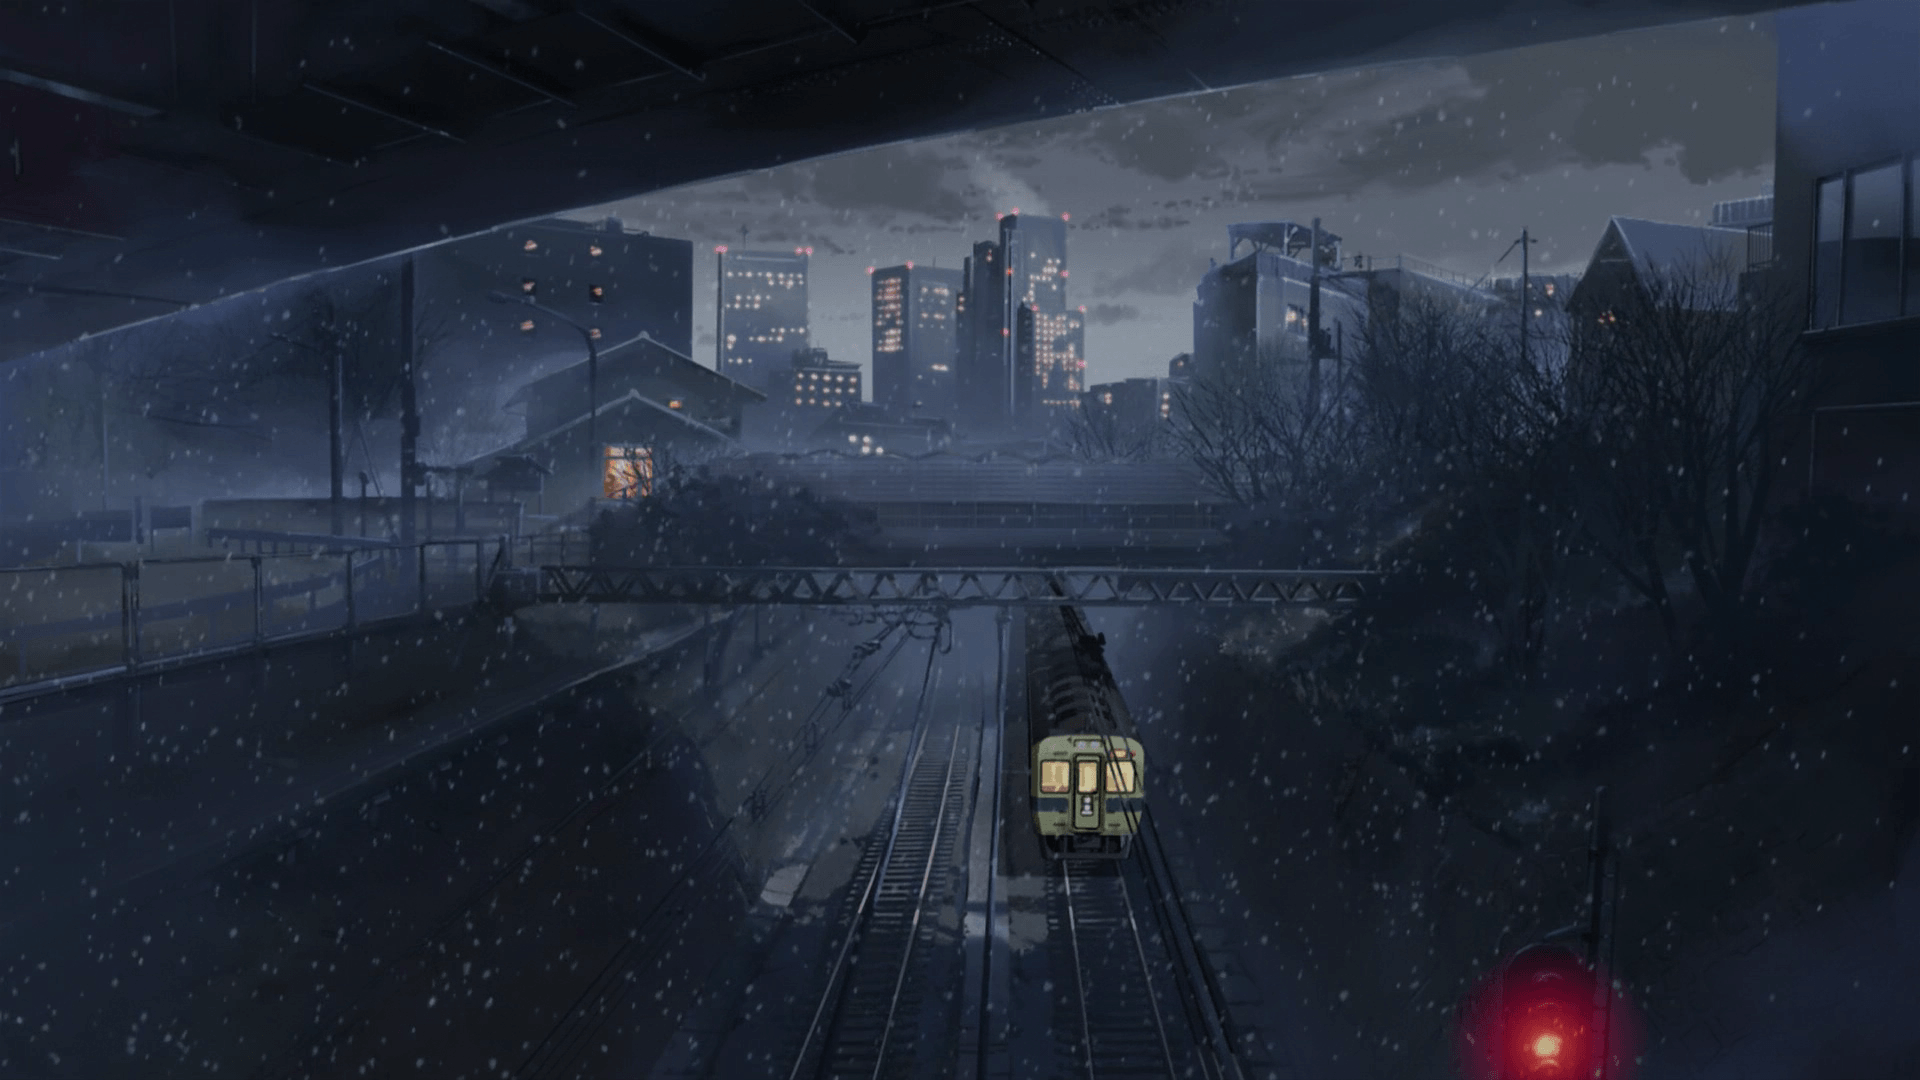 train, Night, City, Anime, 5 Centimeters Per Second Wallpapers HD